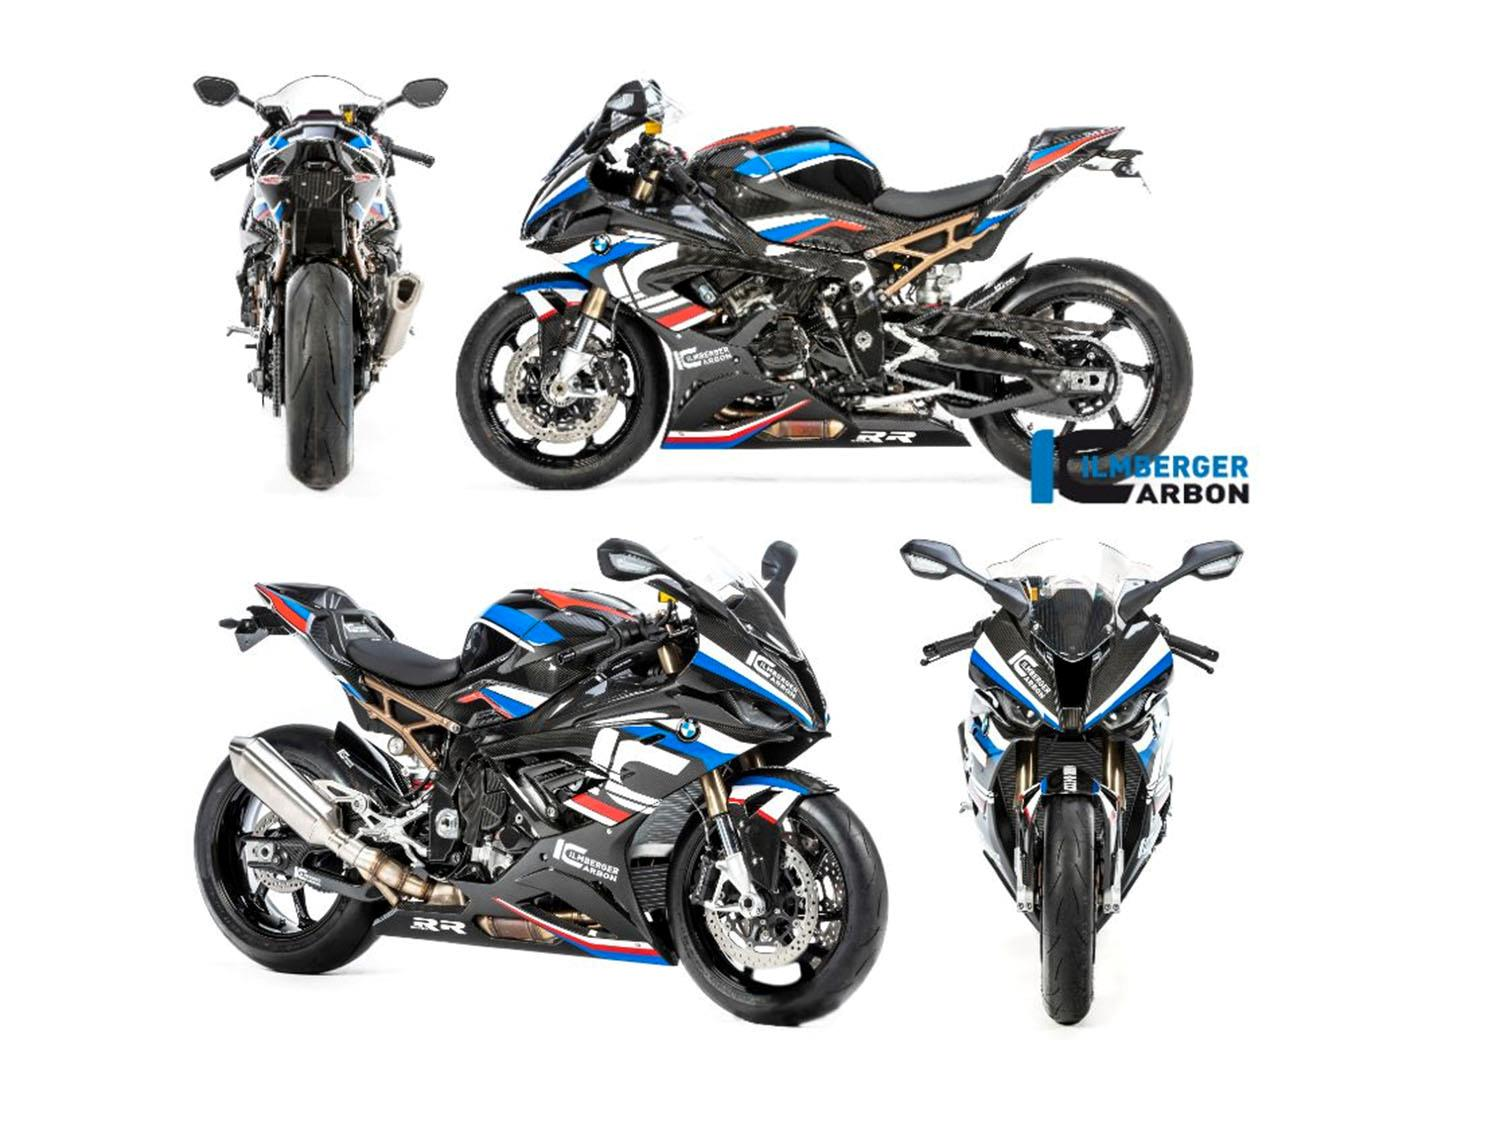 Ilmberger release carbon upgrades for 2019 BMW S1000RR